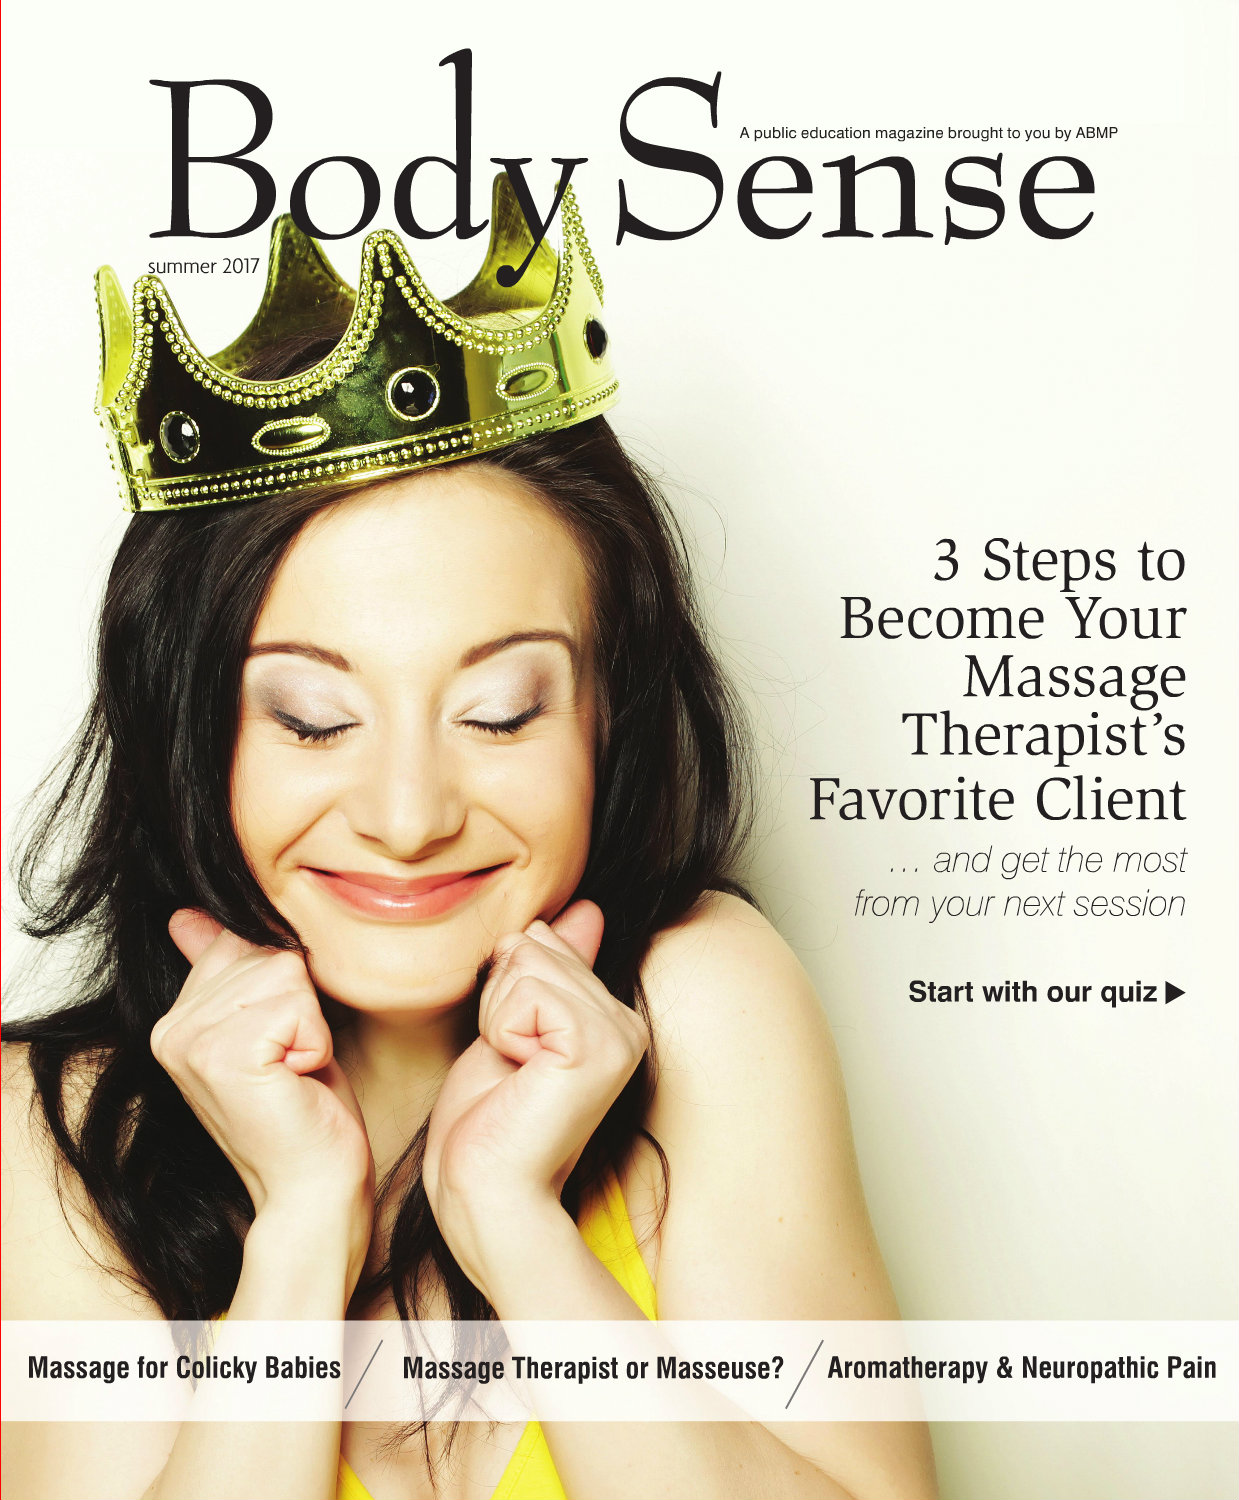 bodysense 2017 2 of 2 cover